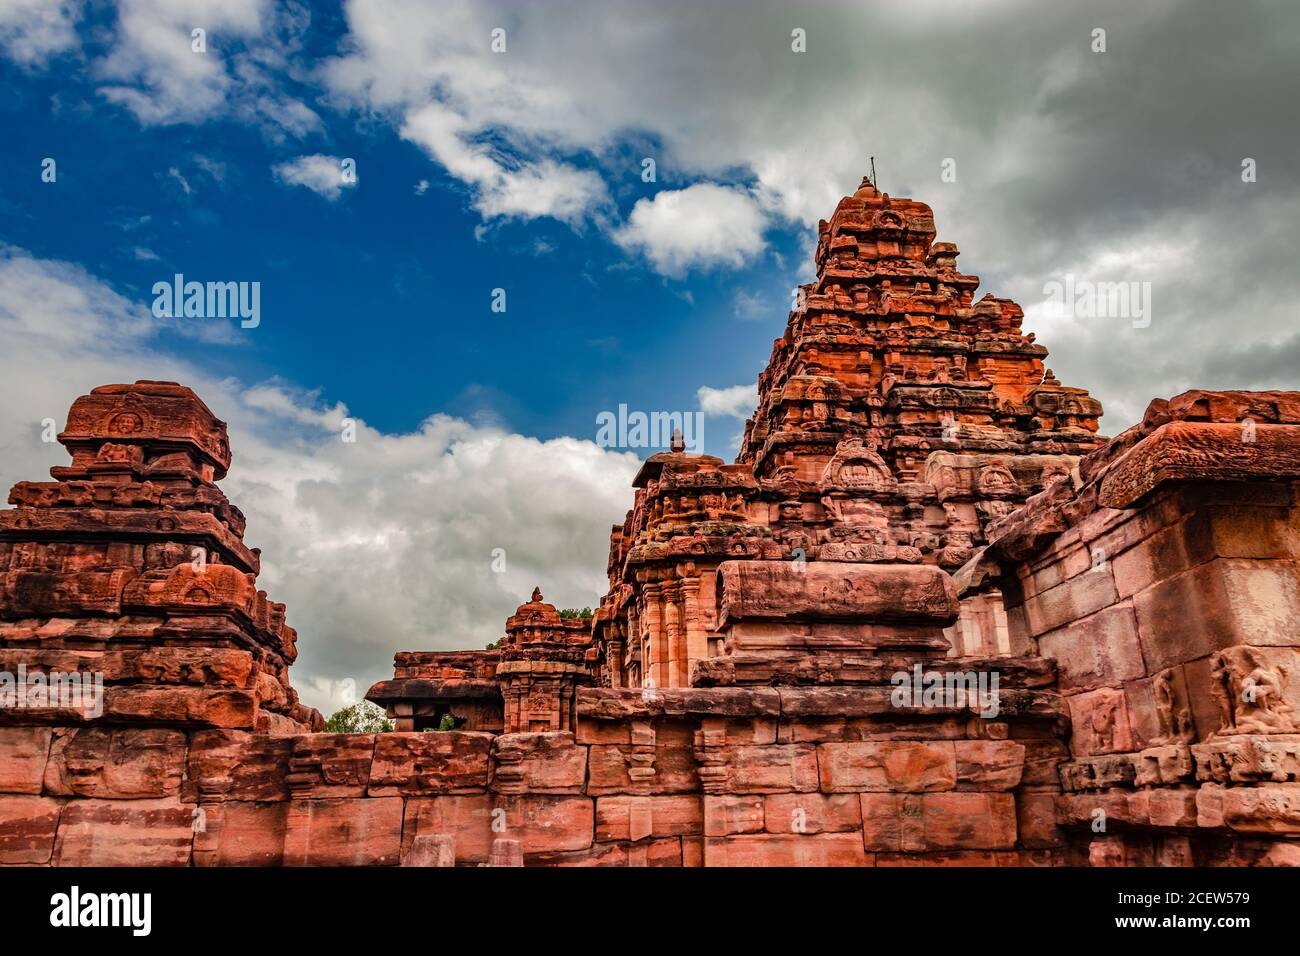 sangameshwara temple pattadakal breathtaking stone art from different angle with amazing sky. It's one of the UNESCO World Heritage Sites and complex Stock Photo